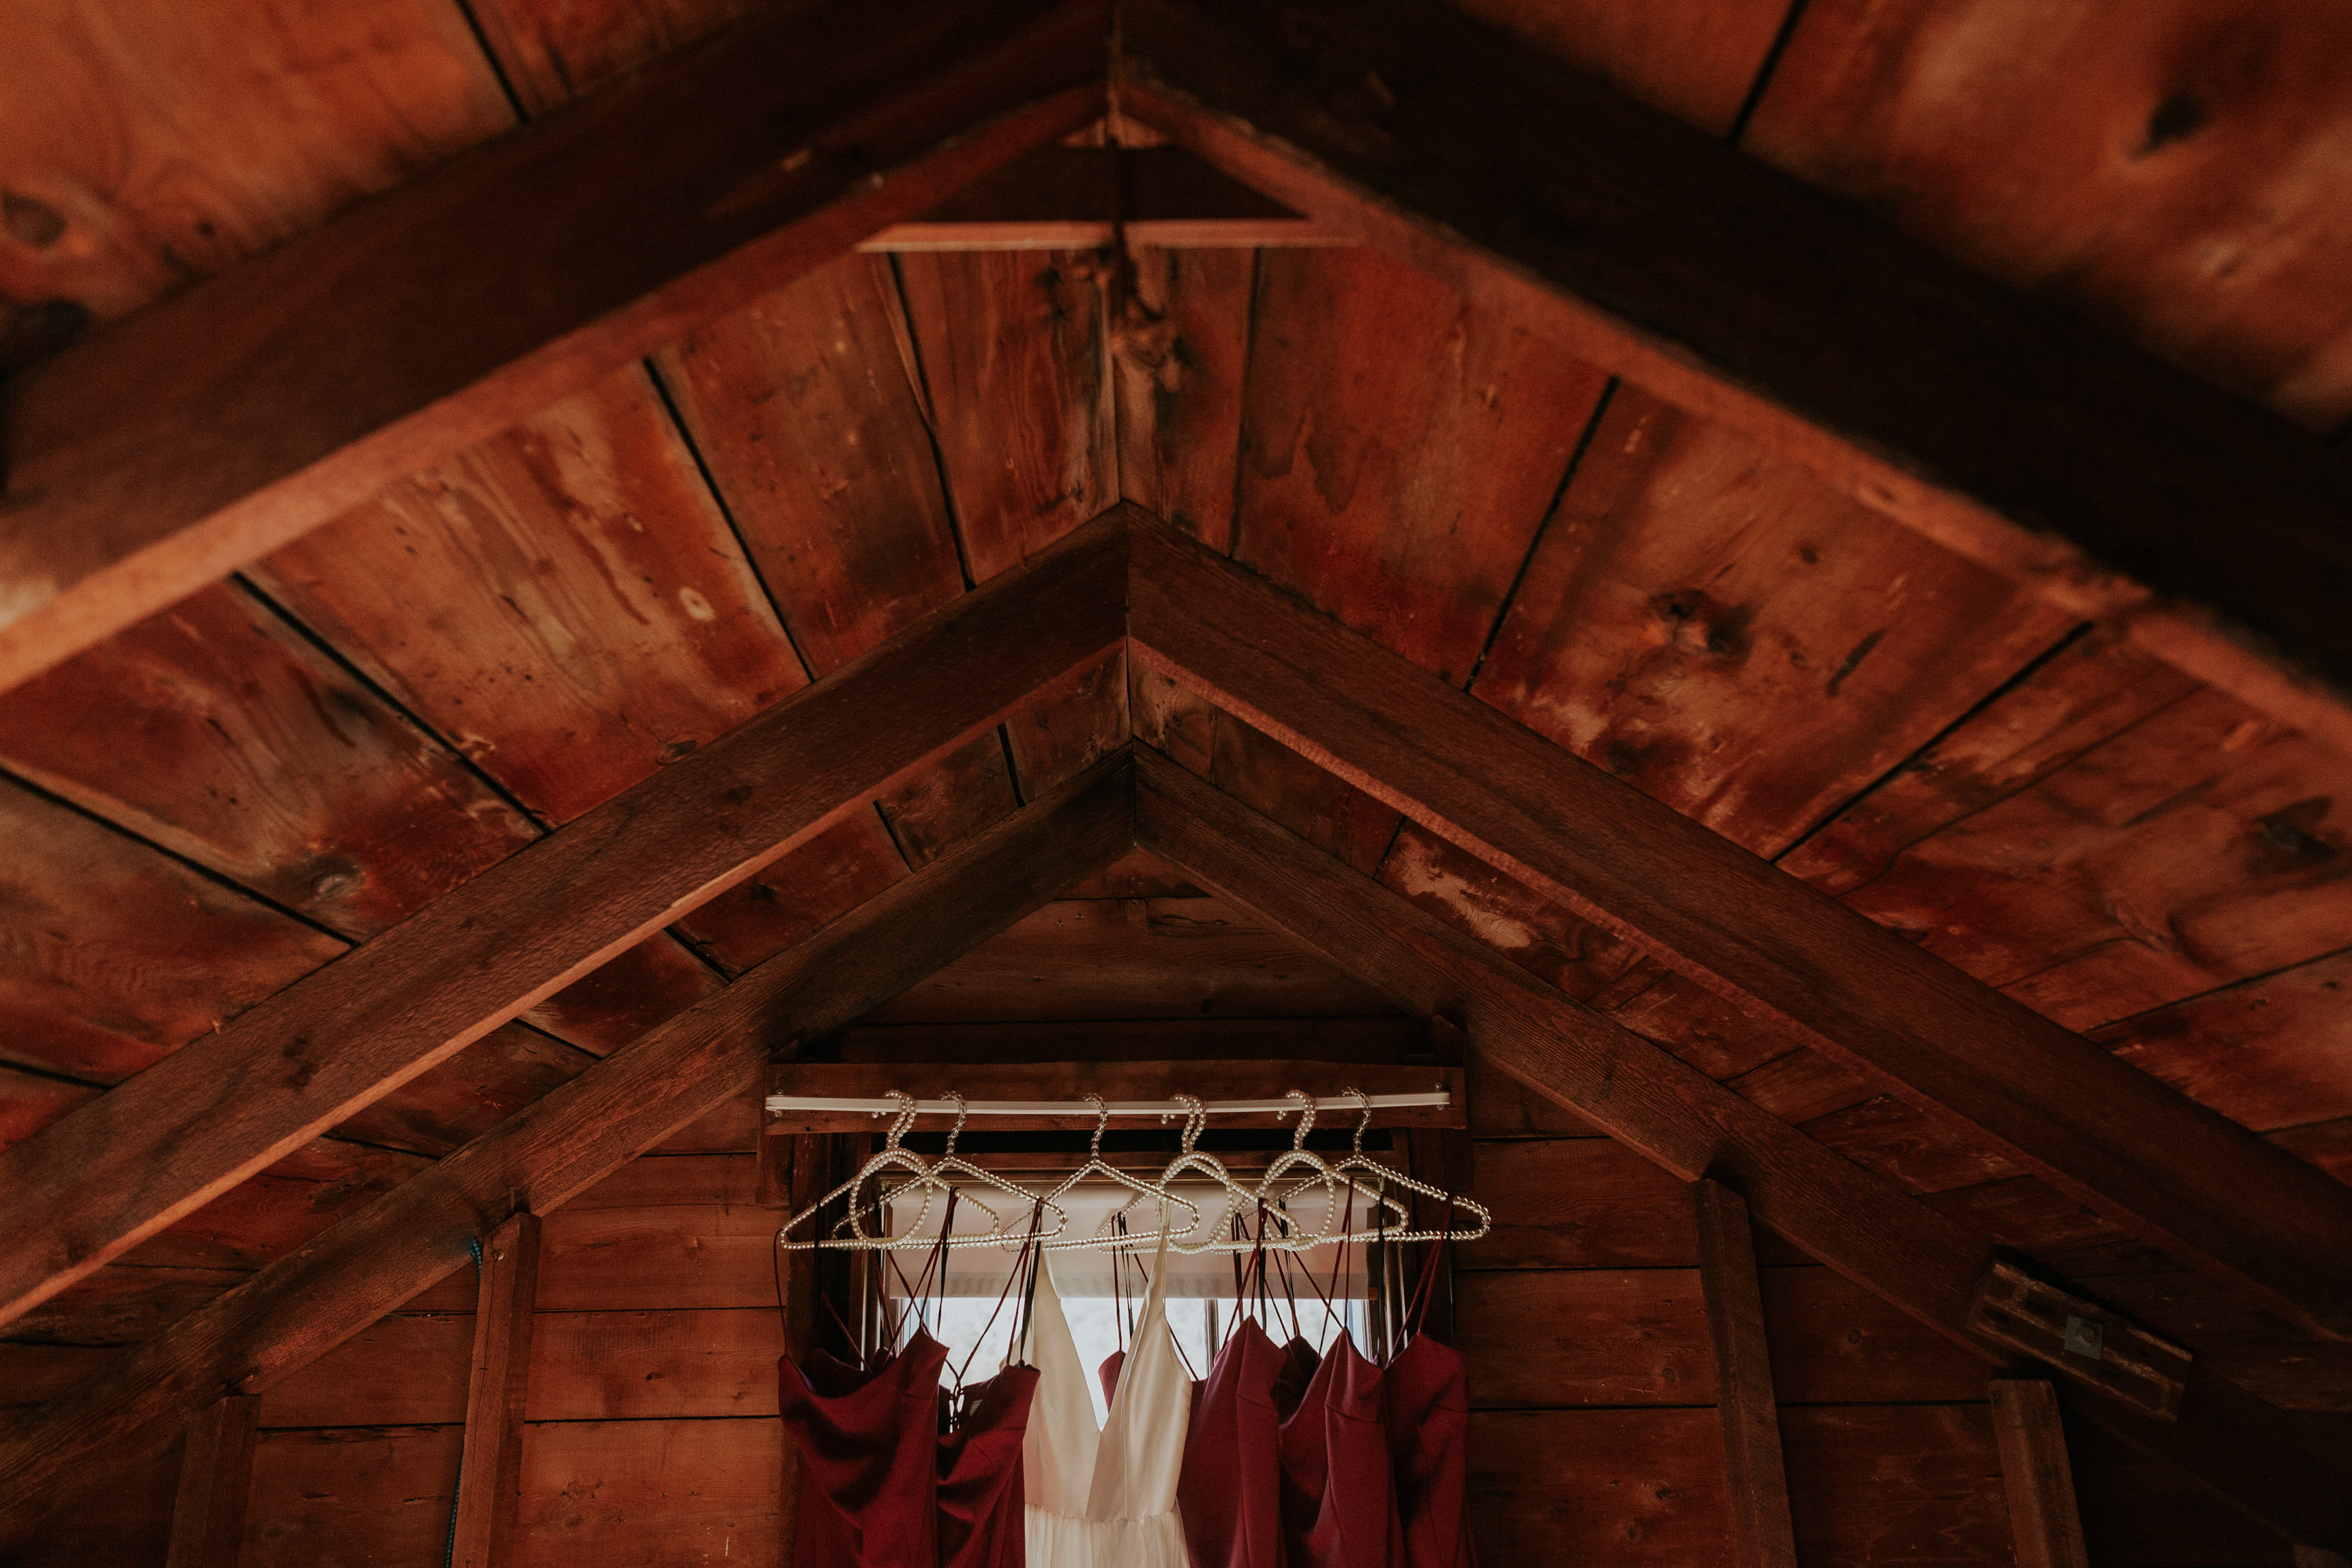 dresses hanging in attic, wedding dress and red bridesmaid dress, getting ready Martha's Vineyard